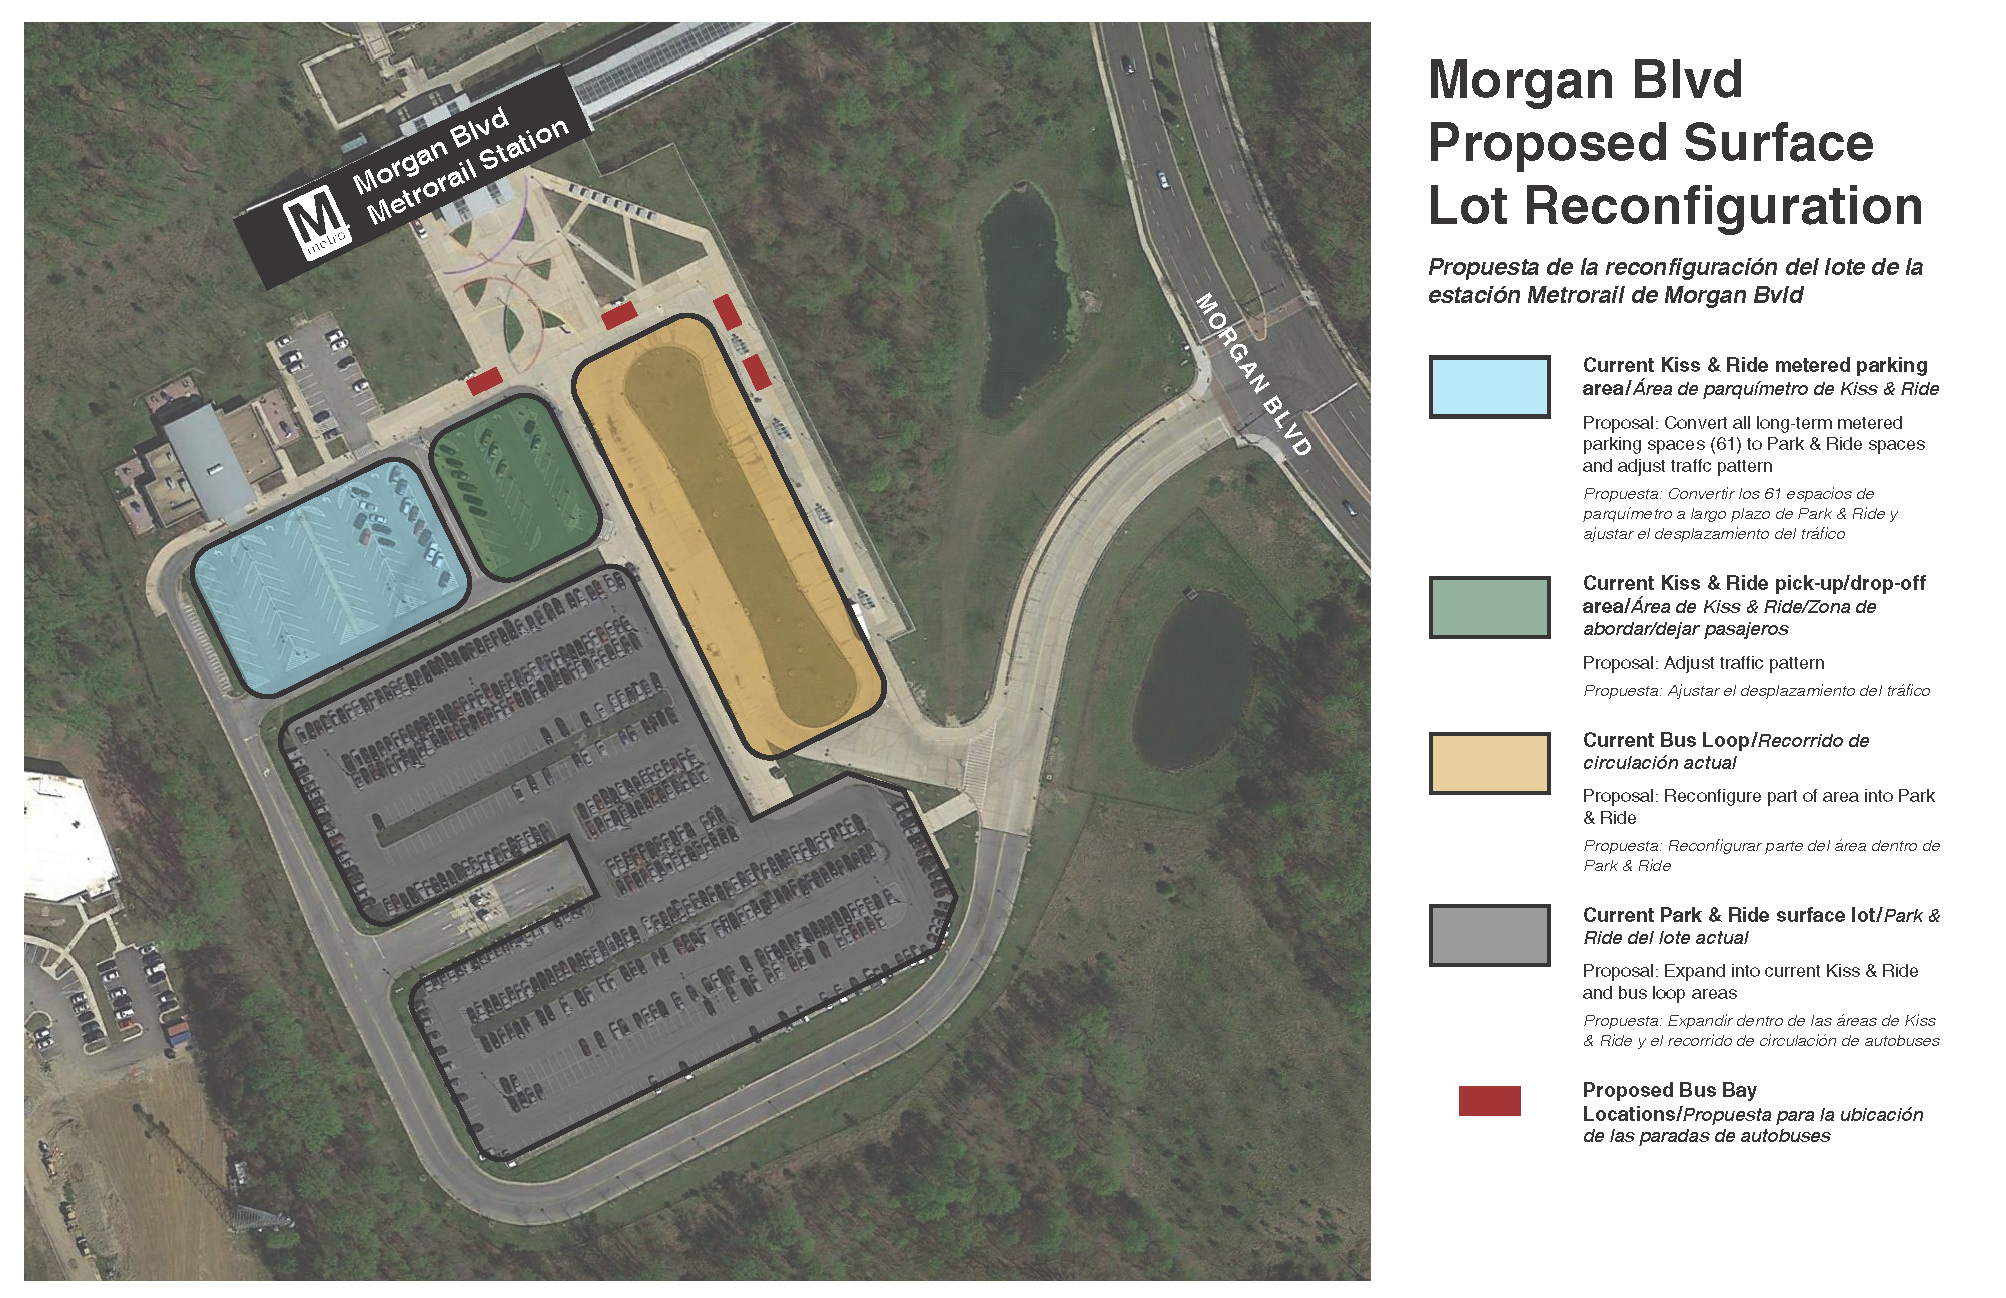 Morgan Blvd reconfiguration plan